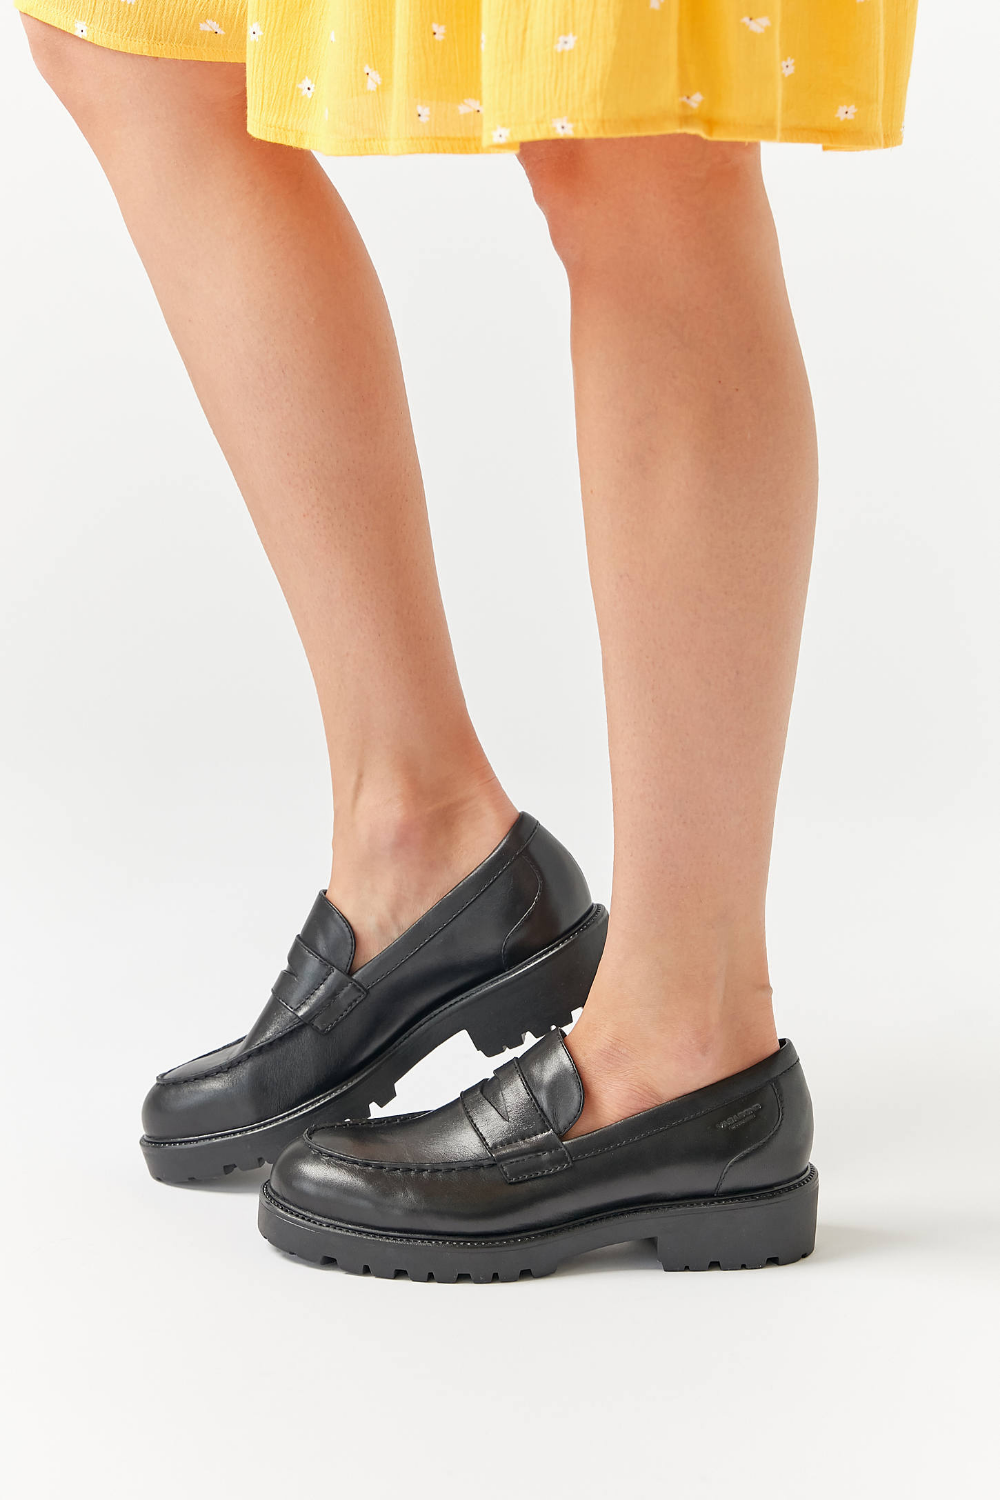 Women shoes, Loafers, Sneaker boots